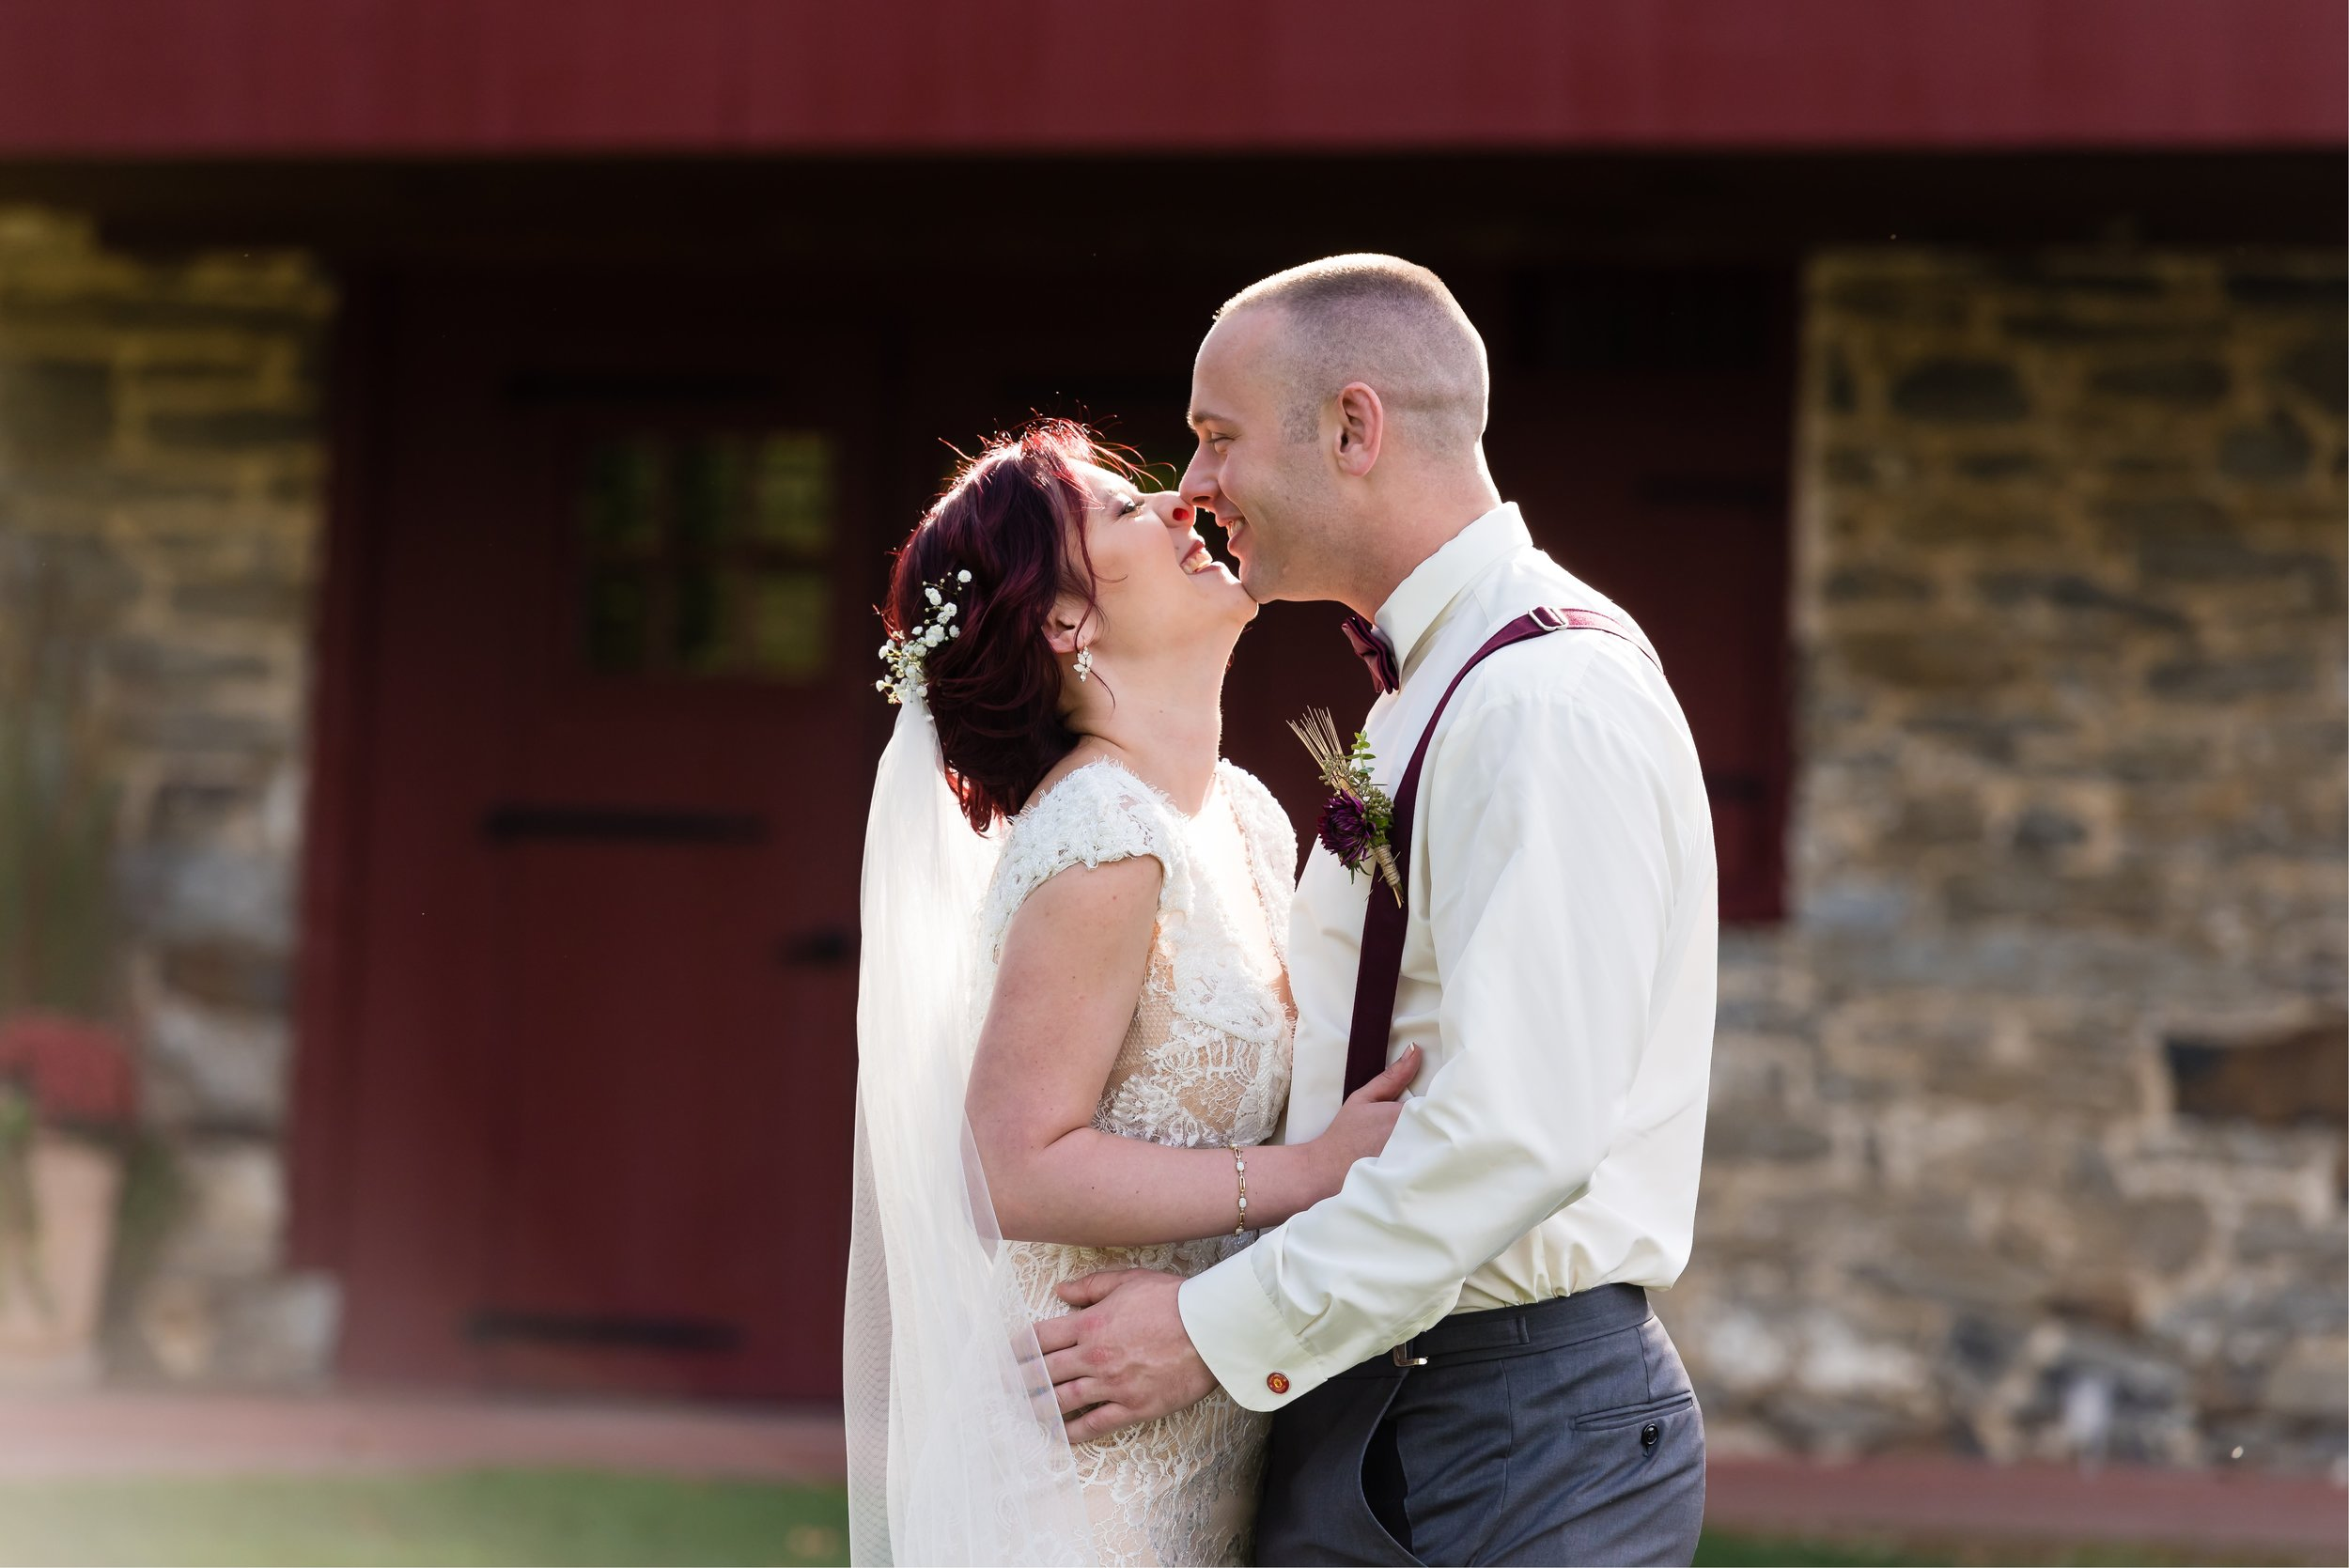 Alex & Adam - The Farm at Eagle's Ridge wedding